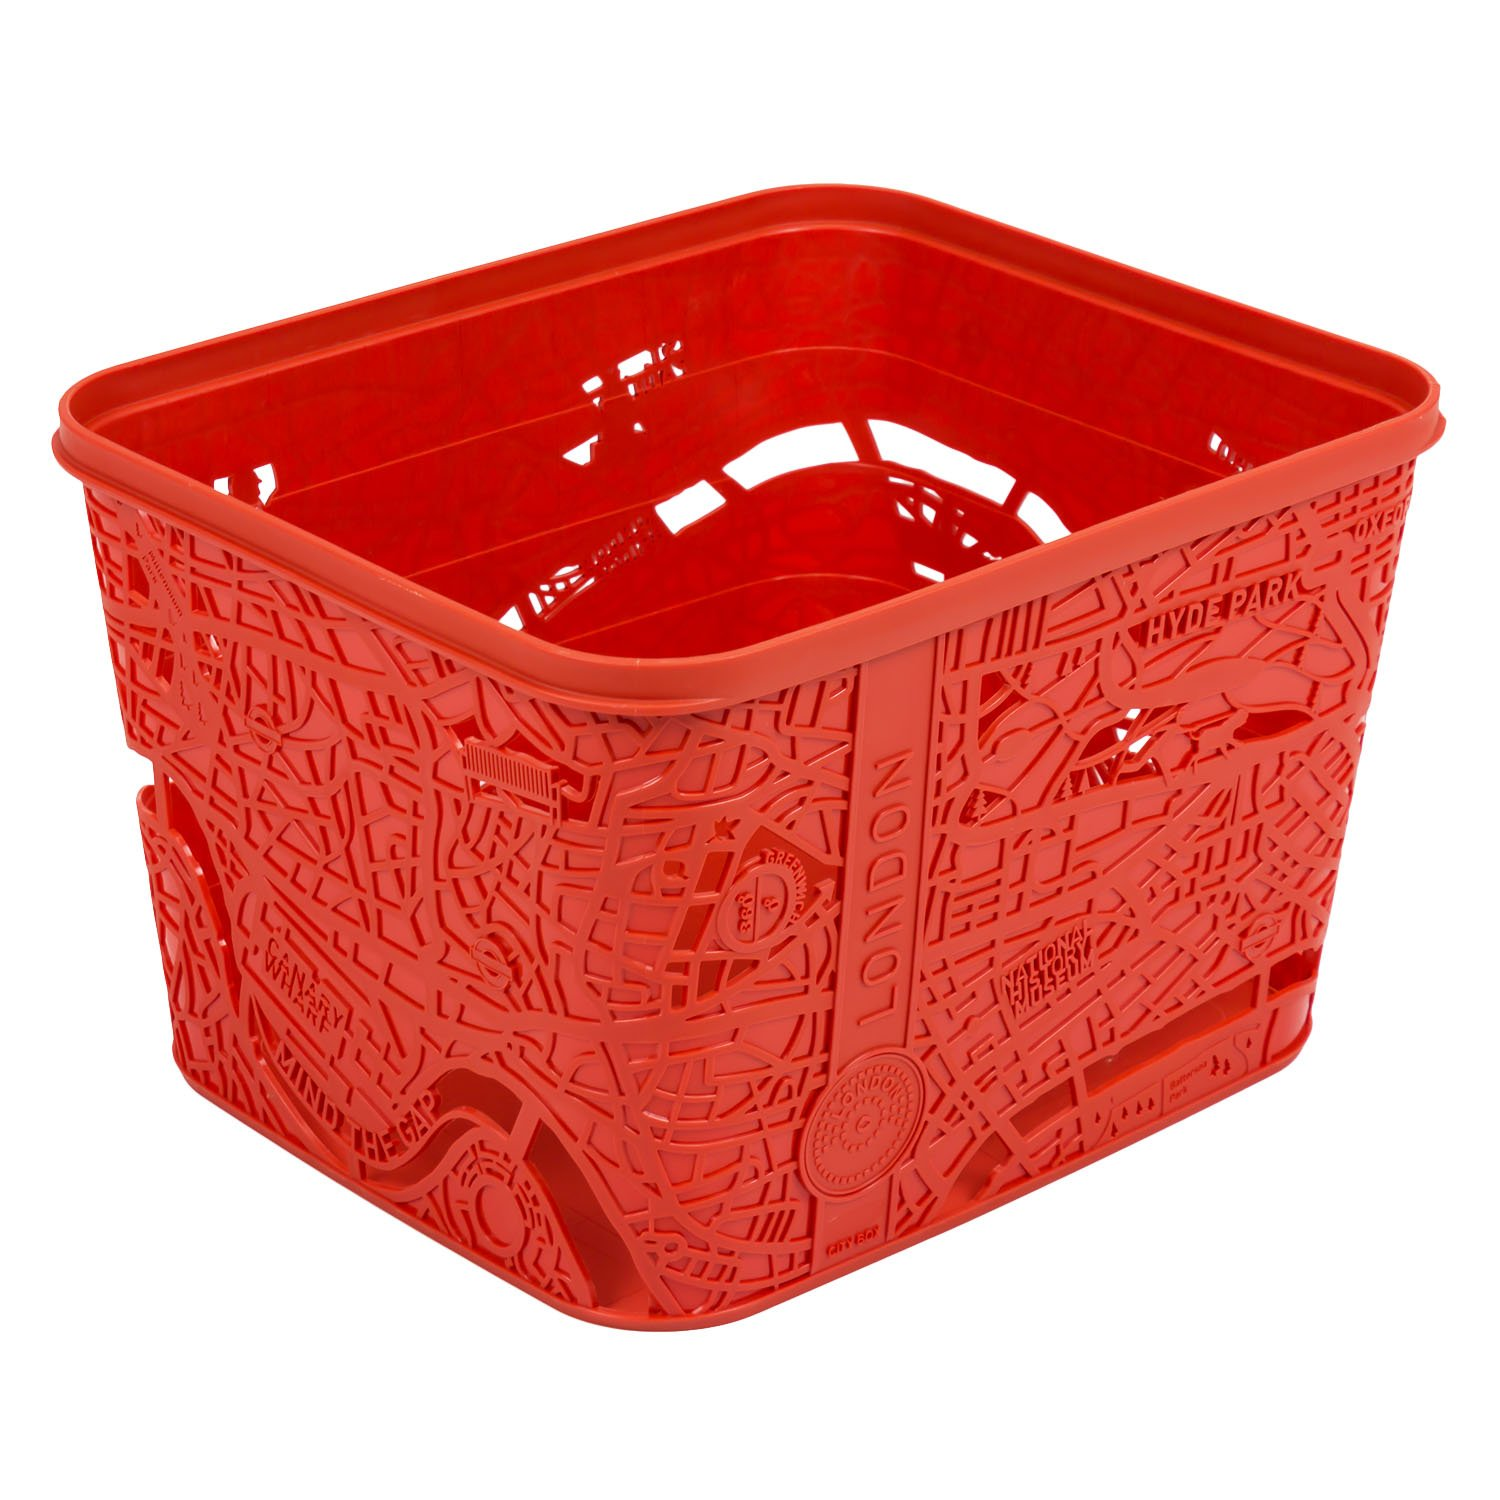 Curver 221858 City Map Box Size L Polypropylene London red 221857